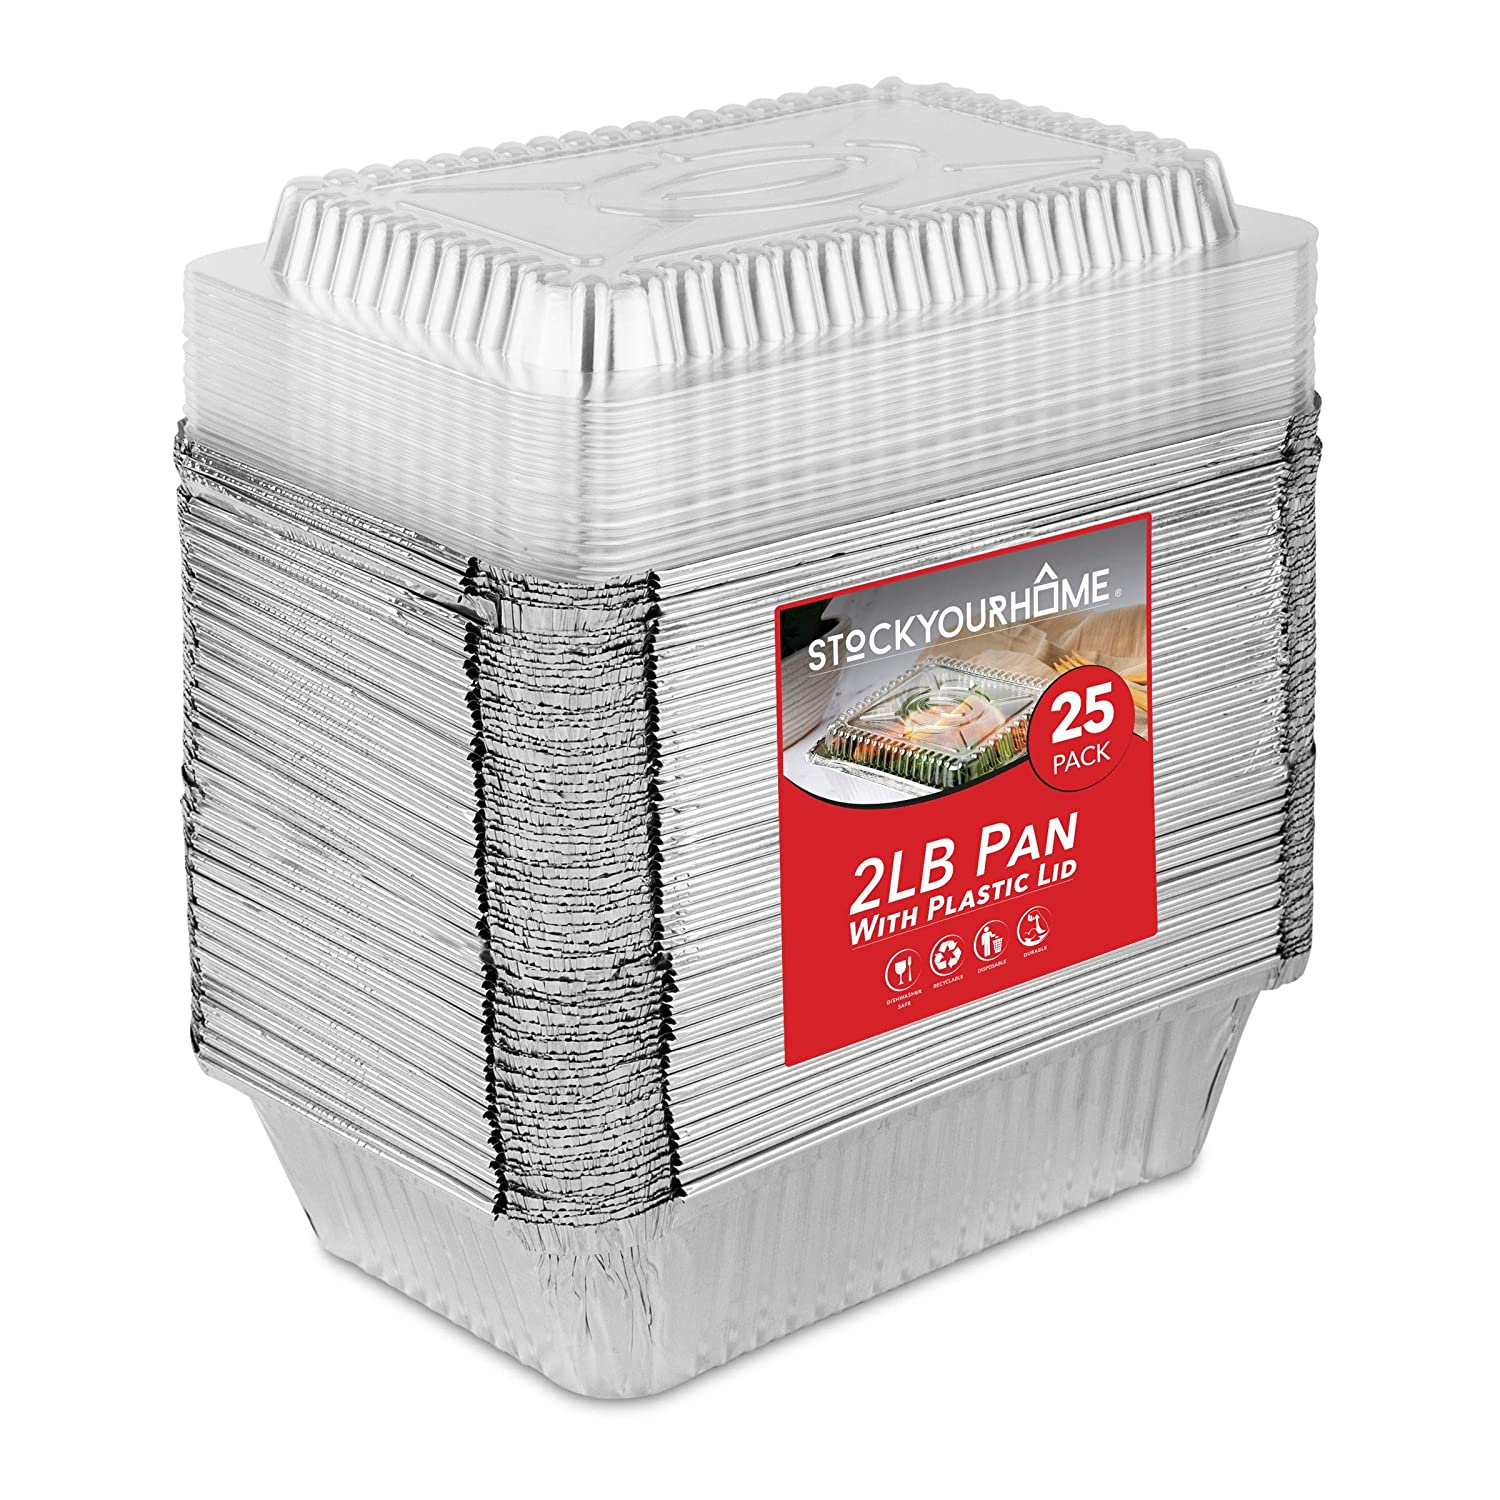 Stock Your Home 2 Lb Aluminum Pans Disposable with Lids (25 Pack) - Food Containers Clear Plastic Lids - Disposable & Recyclable Takeout Trays - Disposable Cookware for Restaurants, Catering, Deli